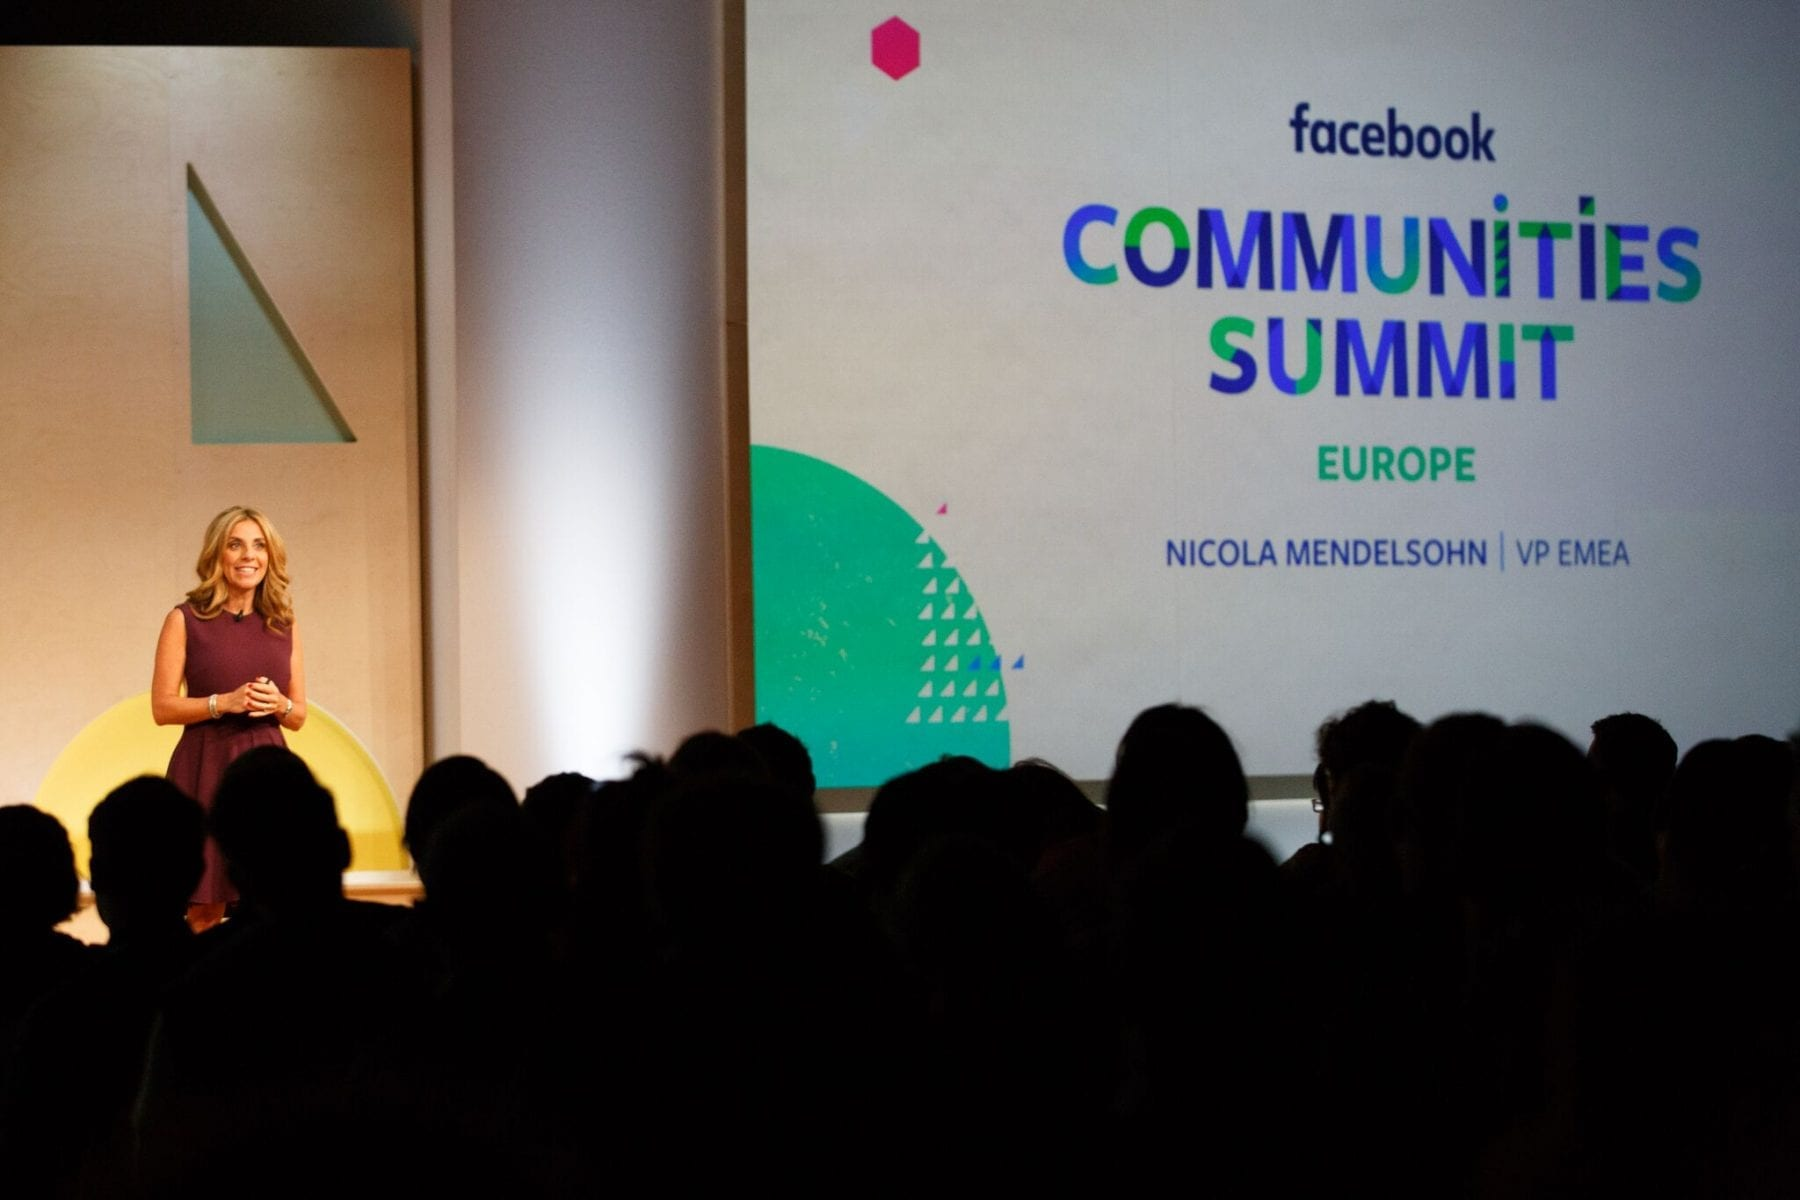 Nicola Mendelsohn, VM EMEA at Facebook, on stage at the Facebook Communities Summit Europe